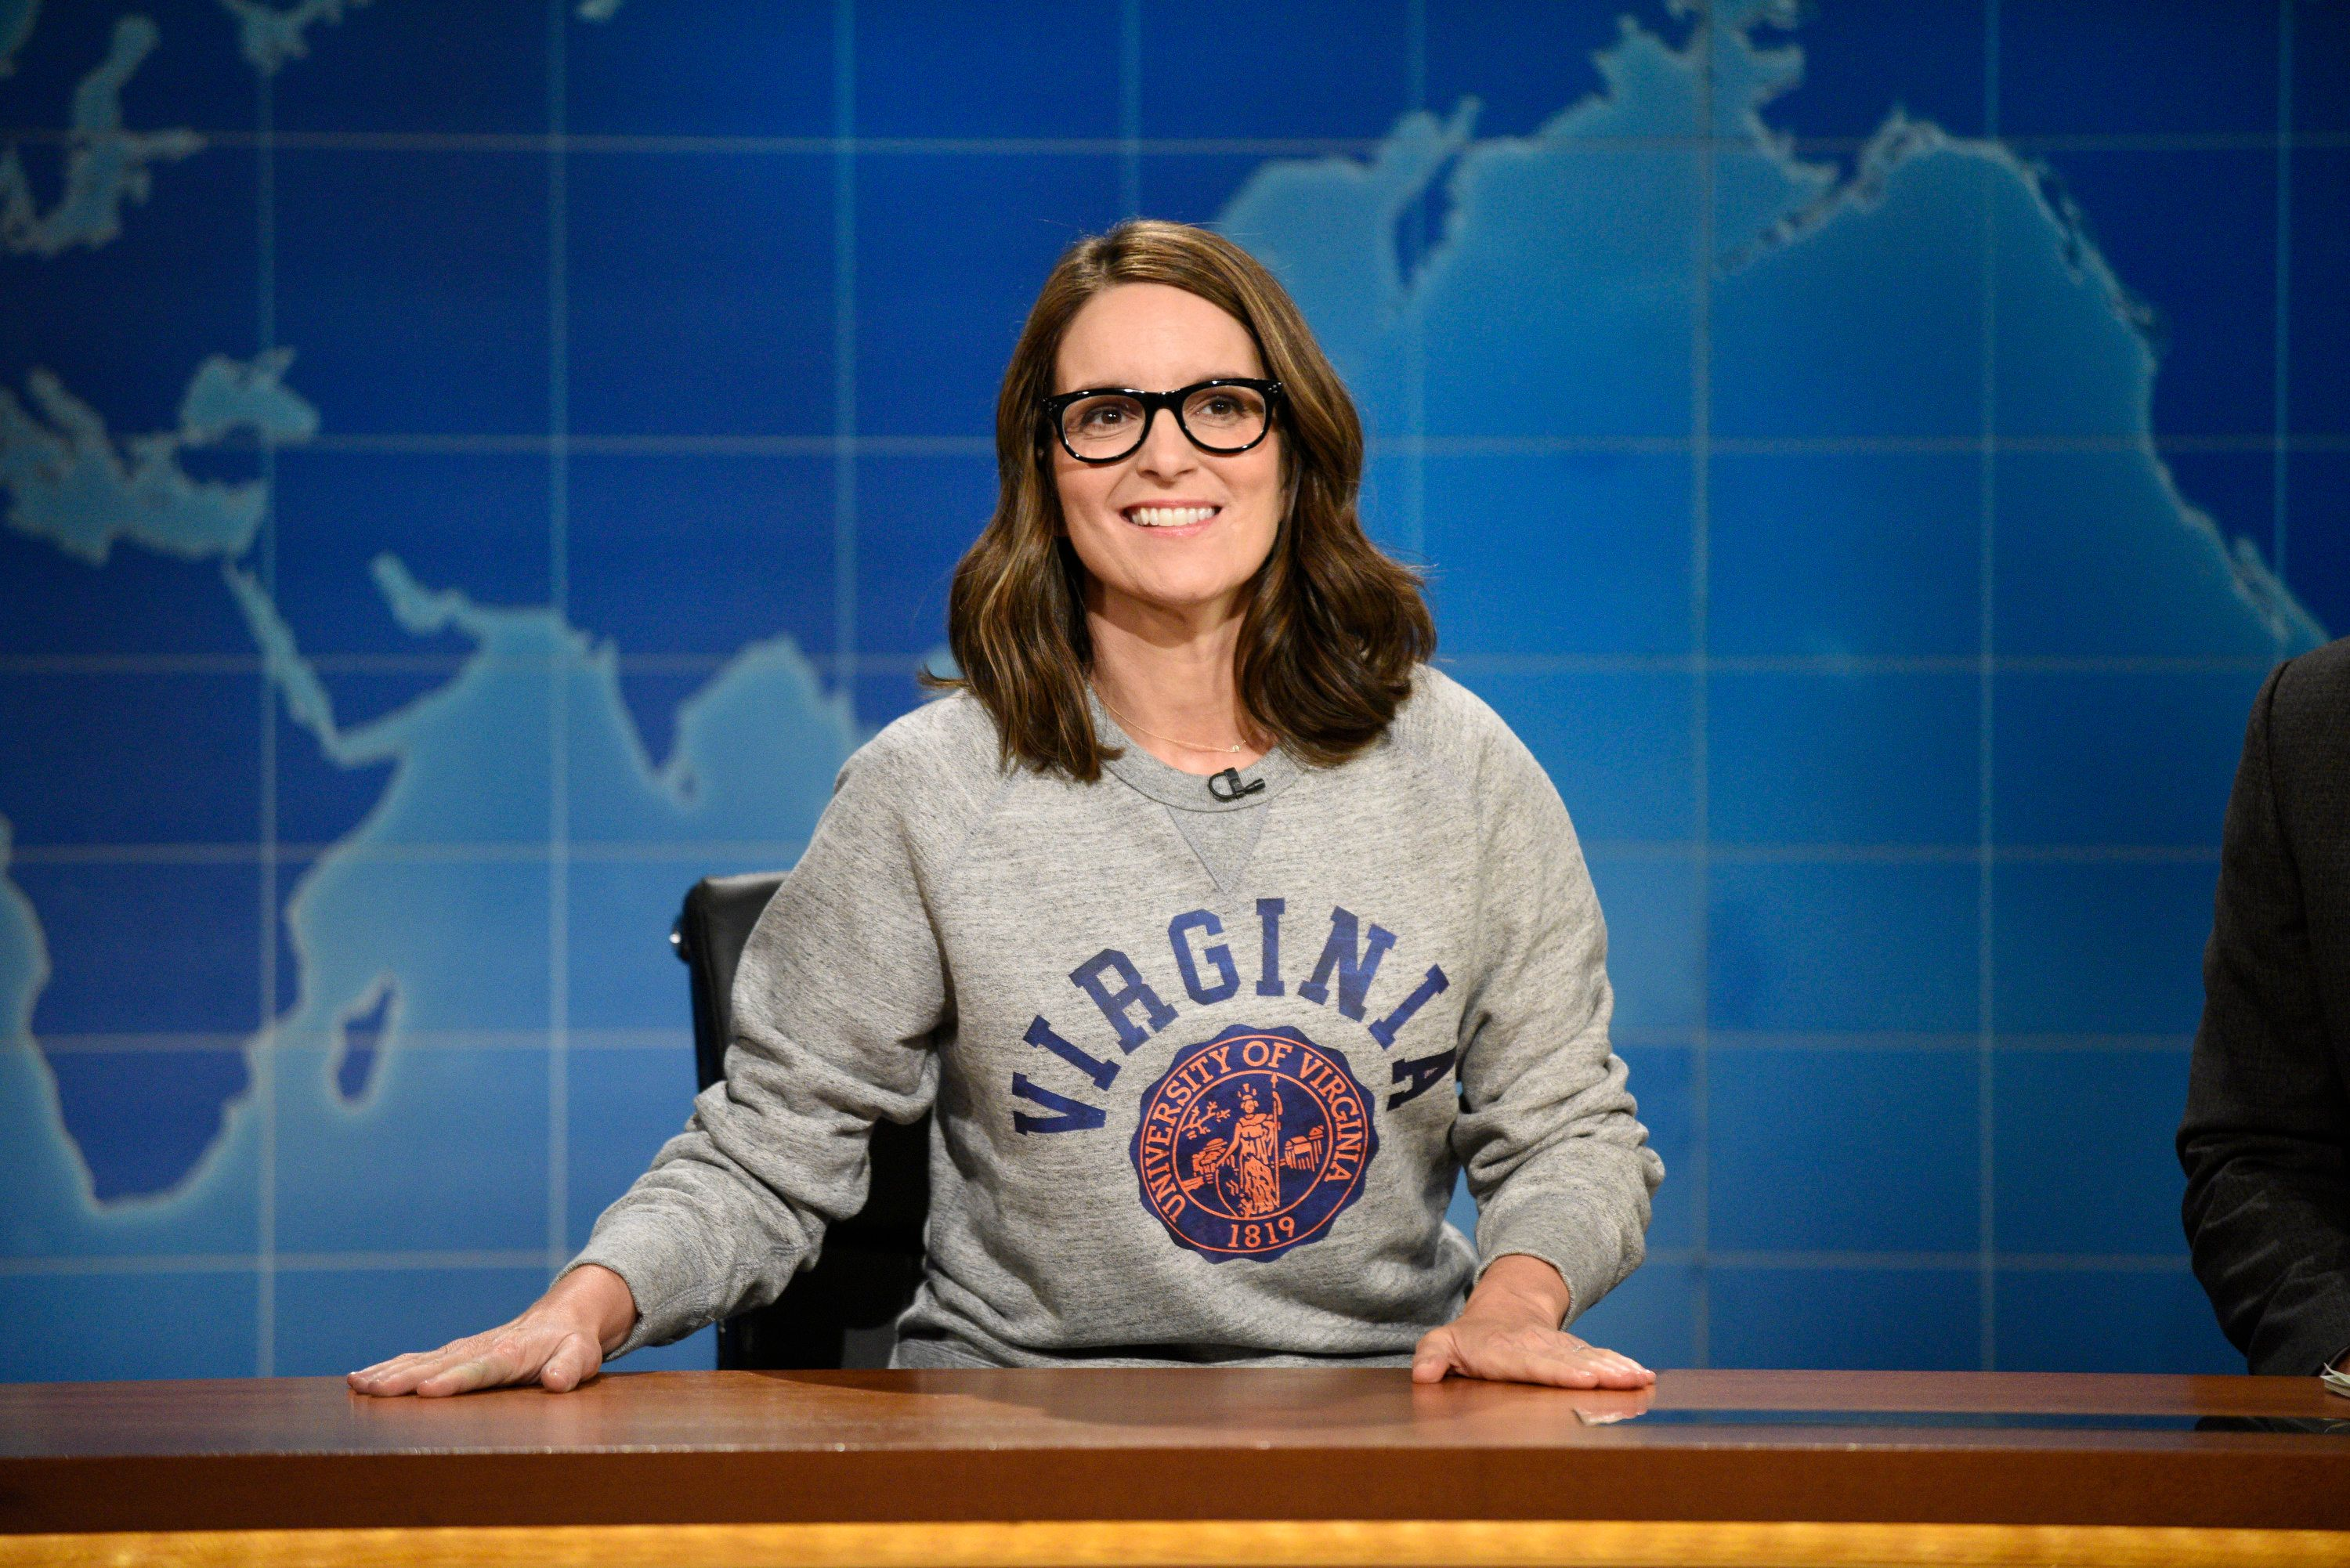 SATURDAY NIGHT LIVE: WEEKEND UPDATE -- Episode 102 -- Pictured: Tina Fey at the Weekend Update desk on August 17, 2017 -- (Photo by: Will Heath/NBC/NBCU Photo Bank via Getty Images)